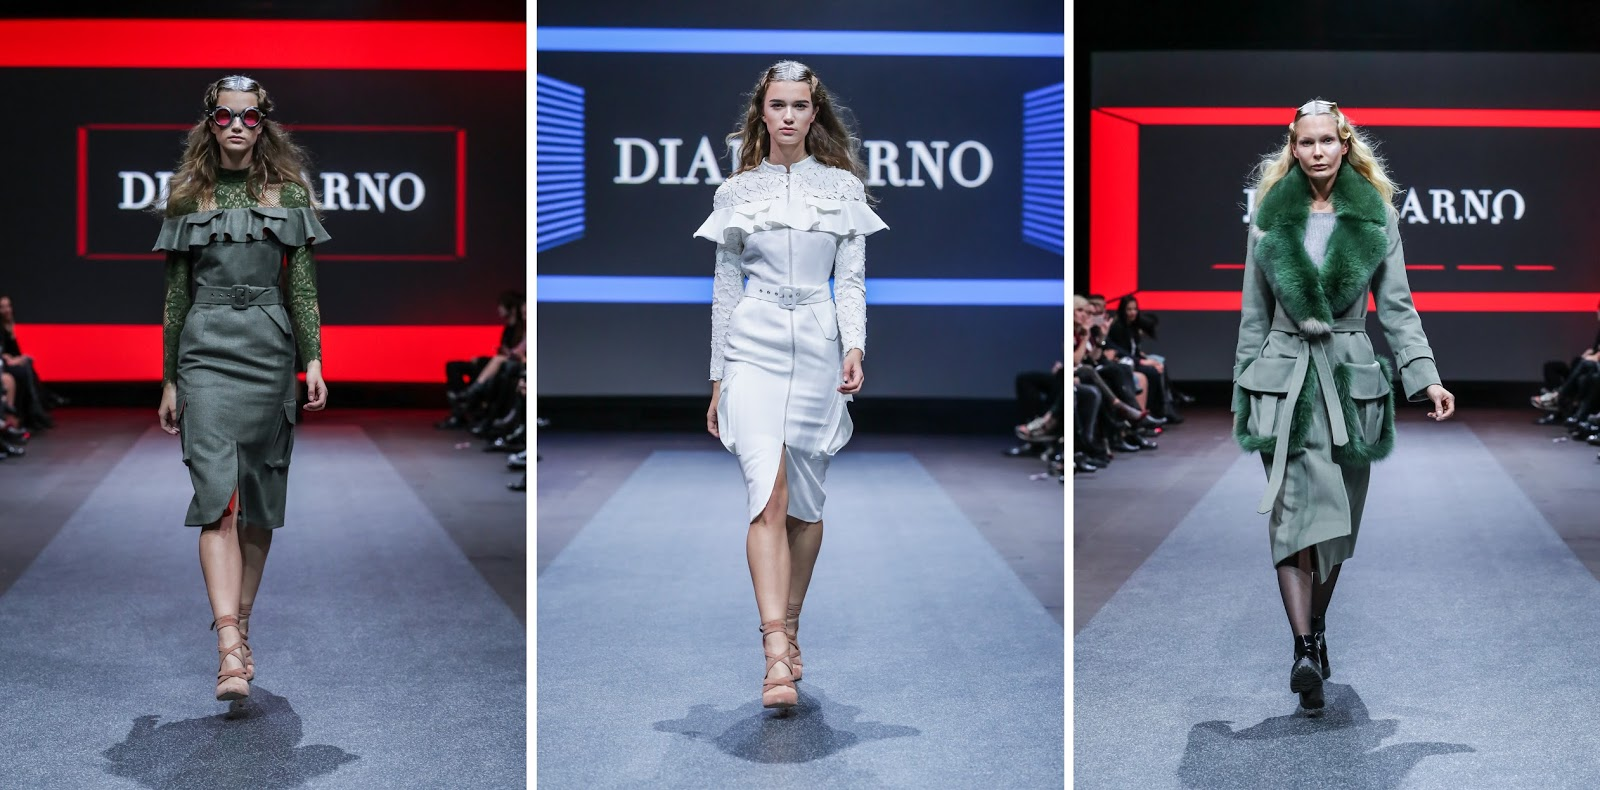 tallinn fashion week 2016 diana arno